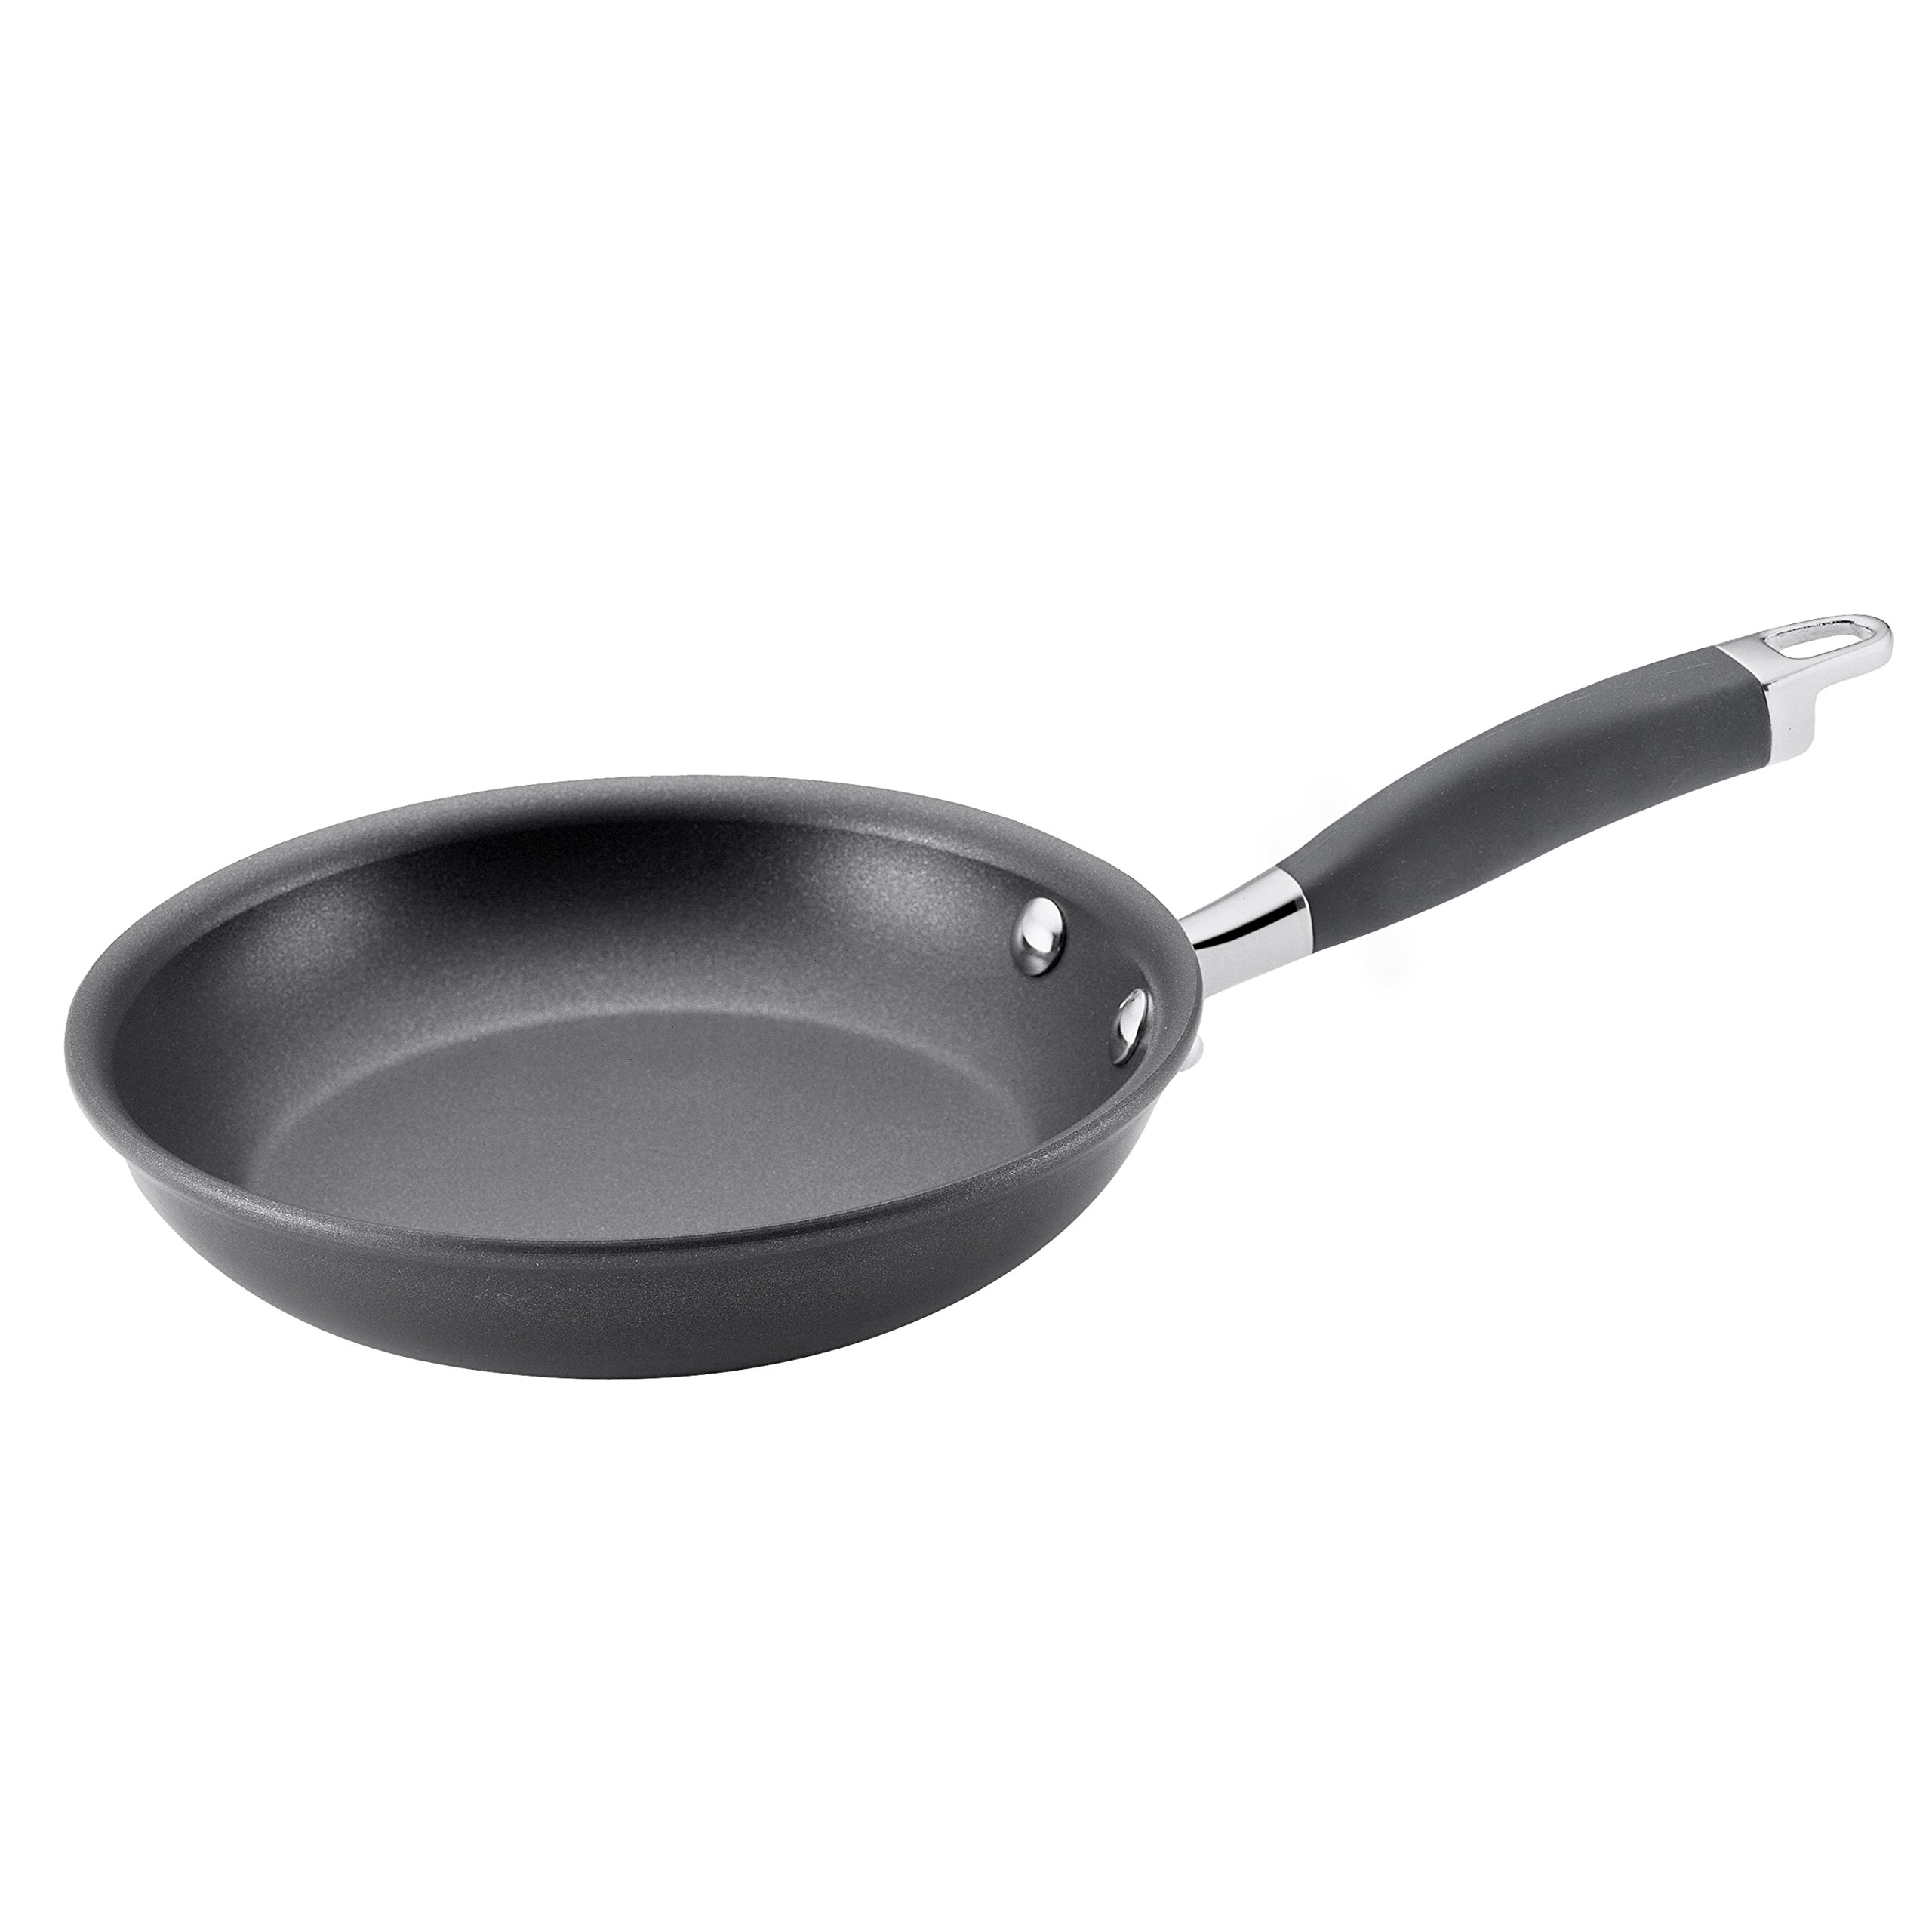 Anolon Advanced Hard-Anodized Nonstick 8-Inch French Skillet, Gray by Anolon